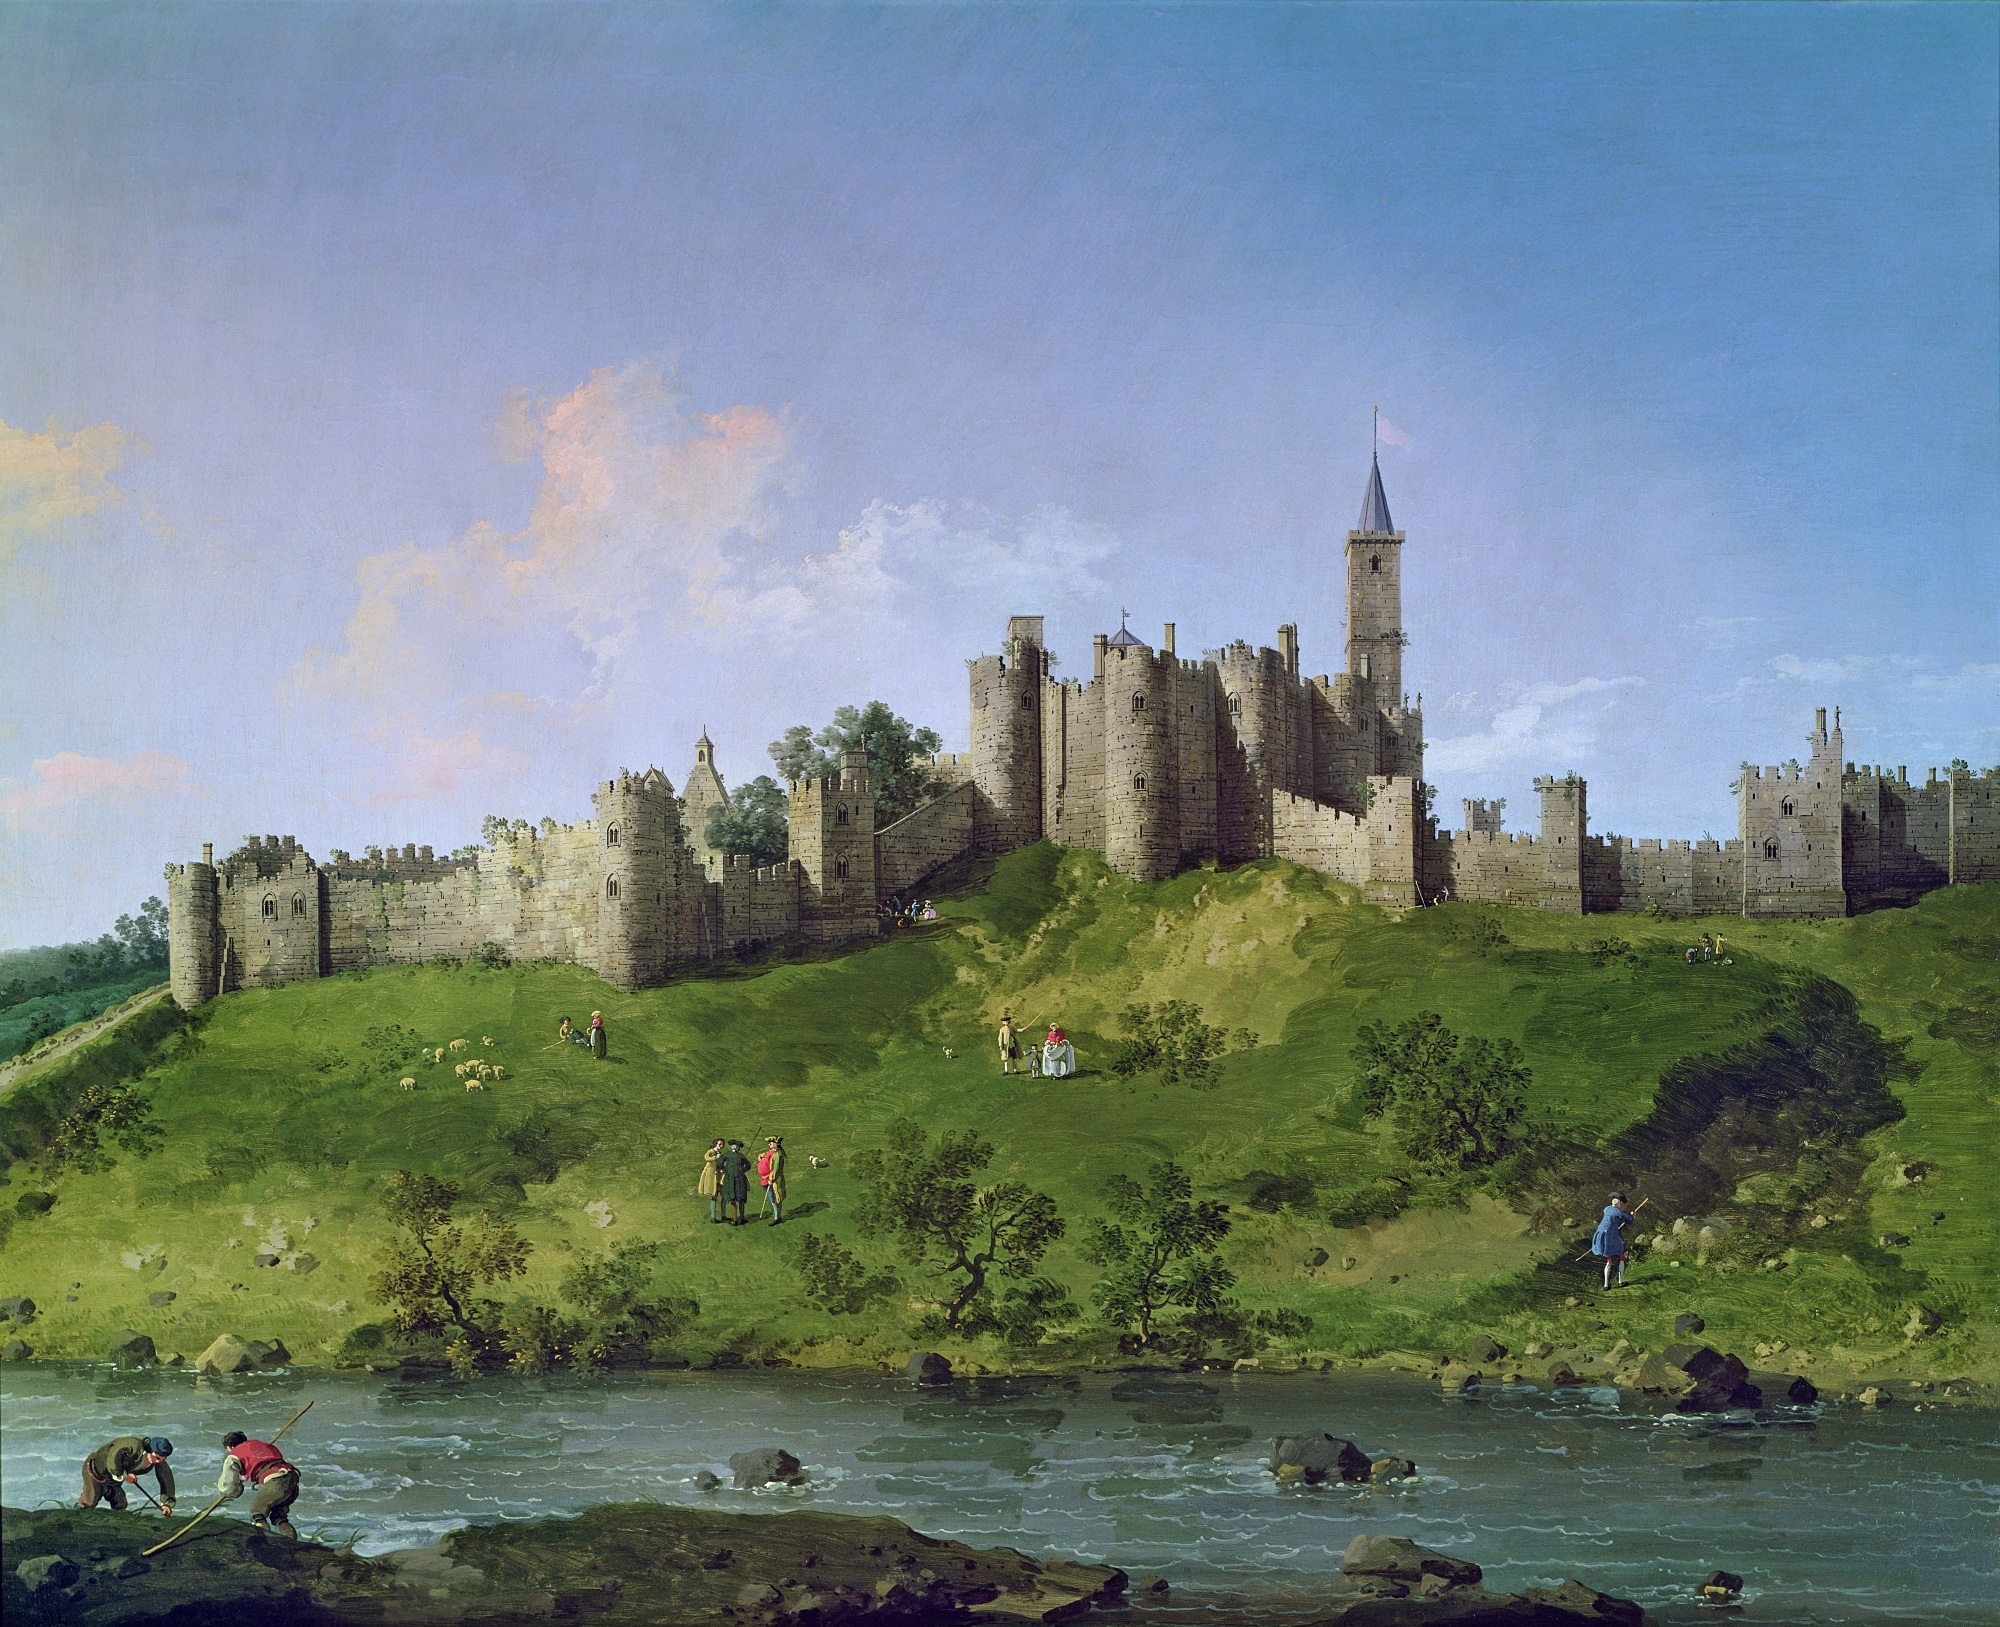 Painting of Alnwick Castle.